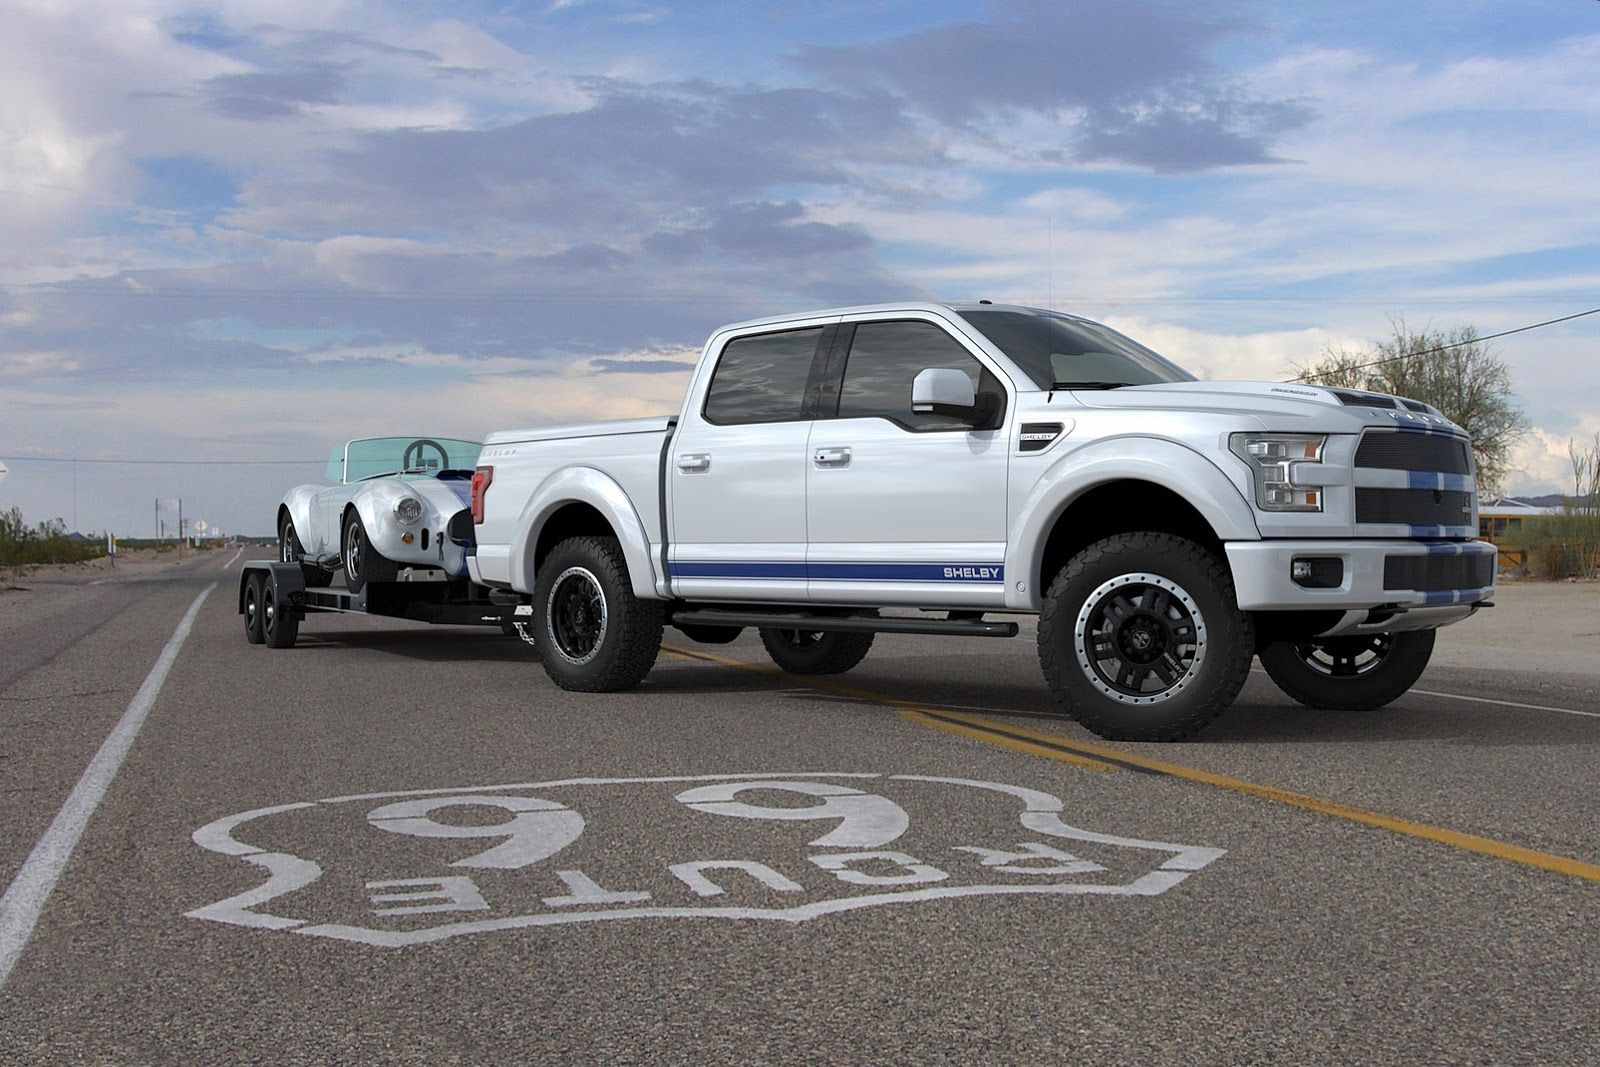 Shelby Brings 700 Horsepower 2016 Ford F 150 To Sema Shelby Ford F150 Ford Trucks